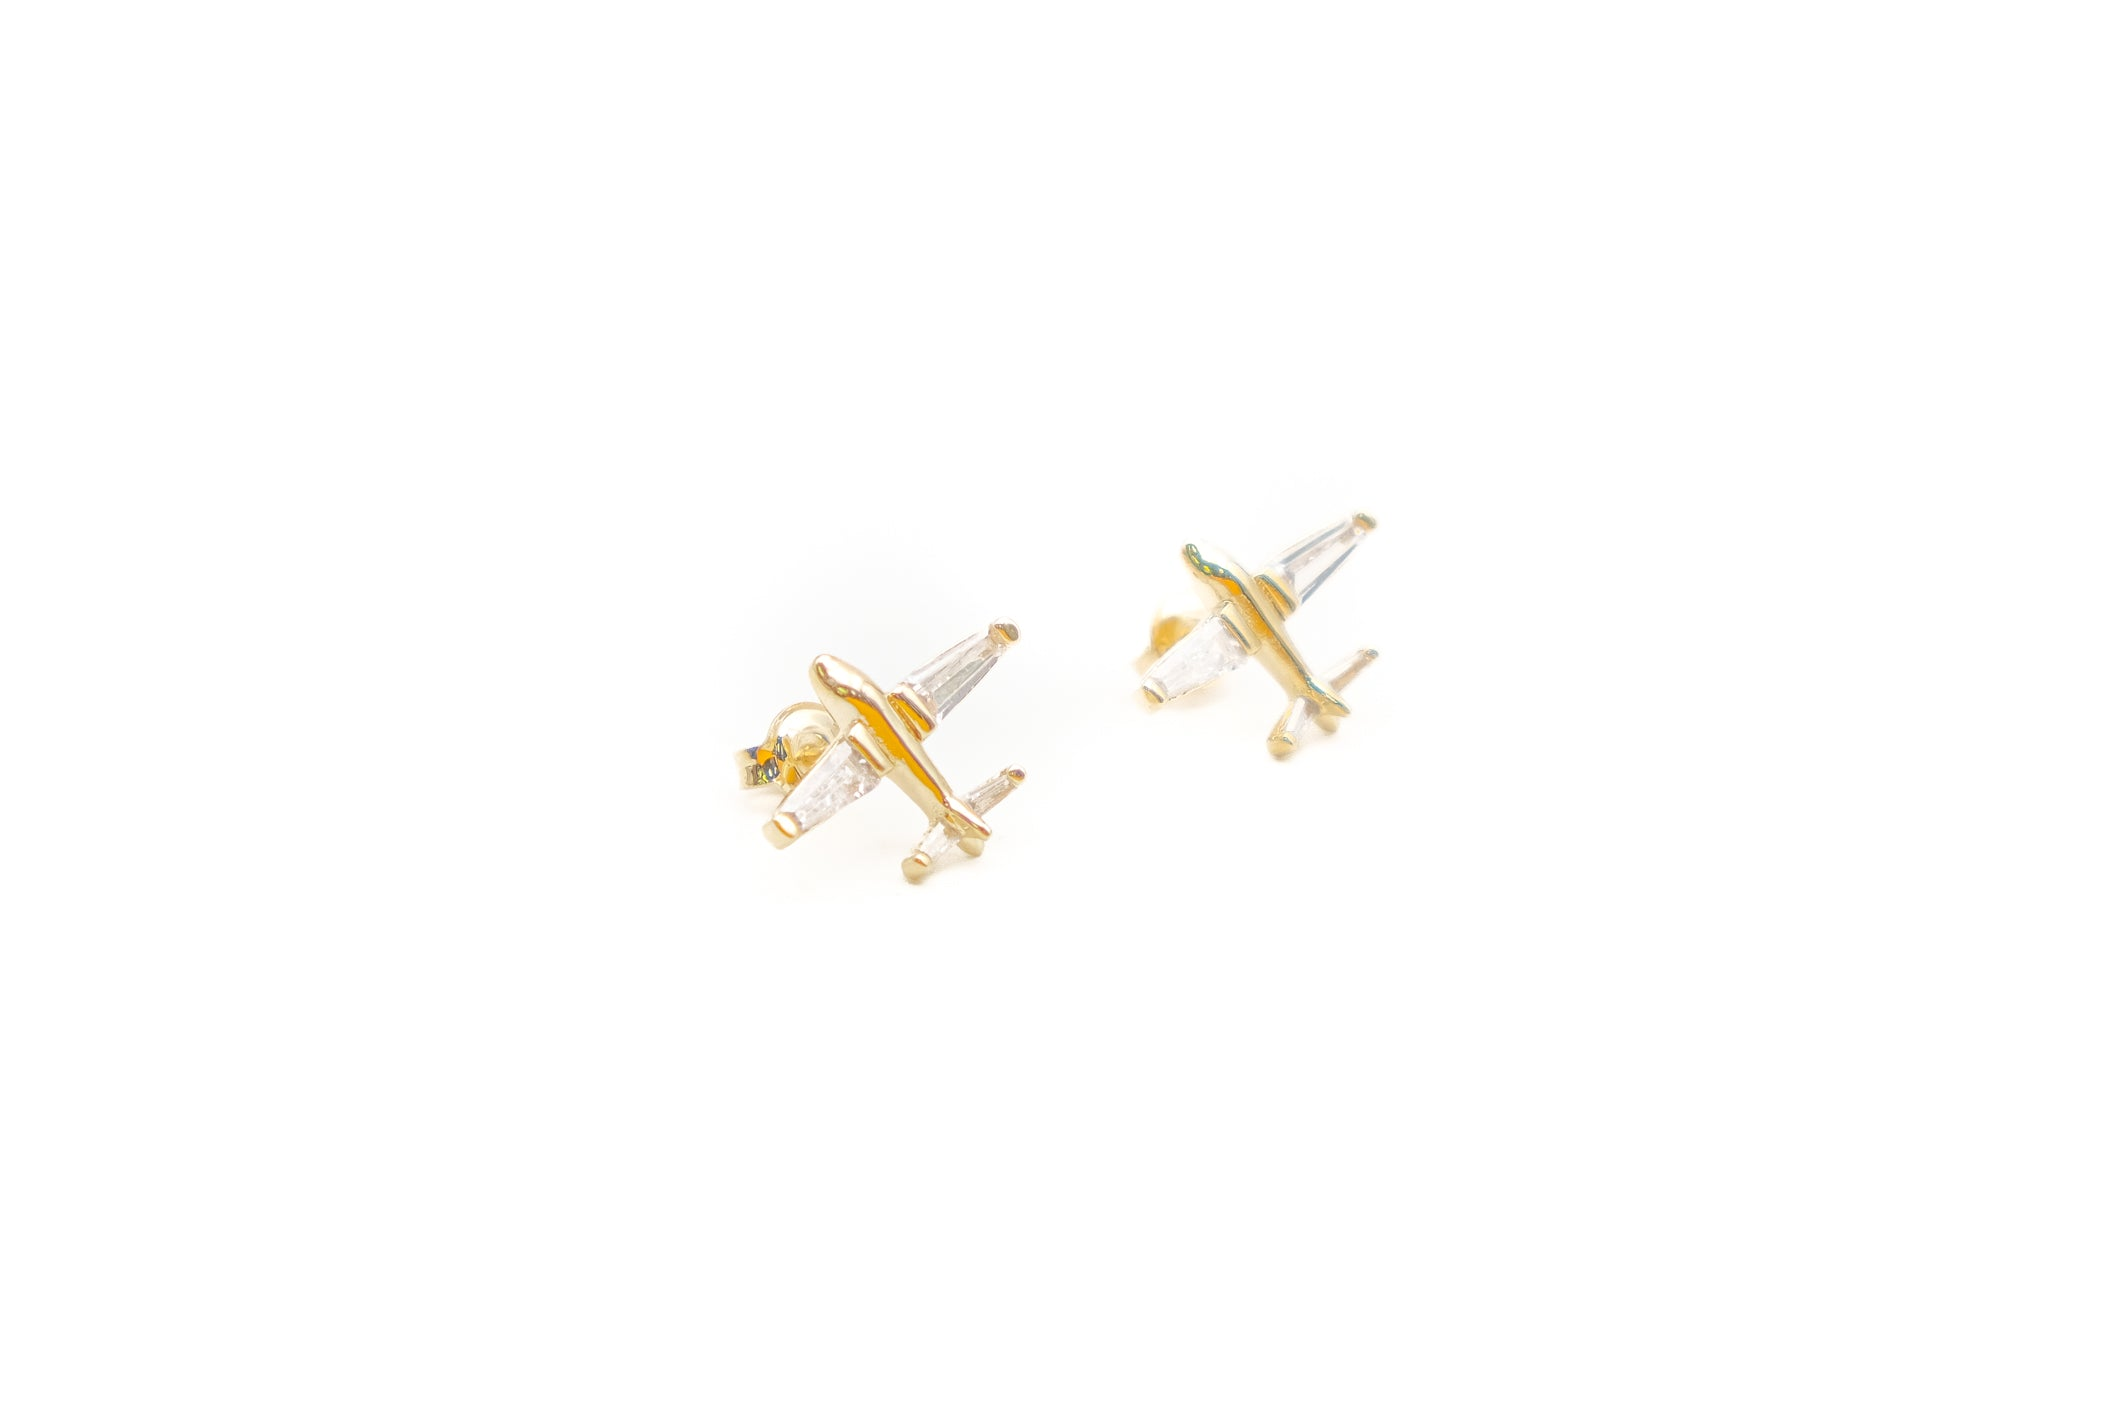 Airplane with Crystals Earrings - (1 pair)